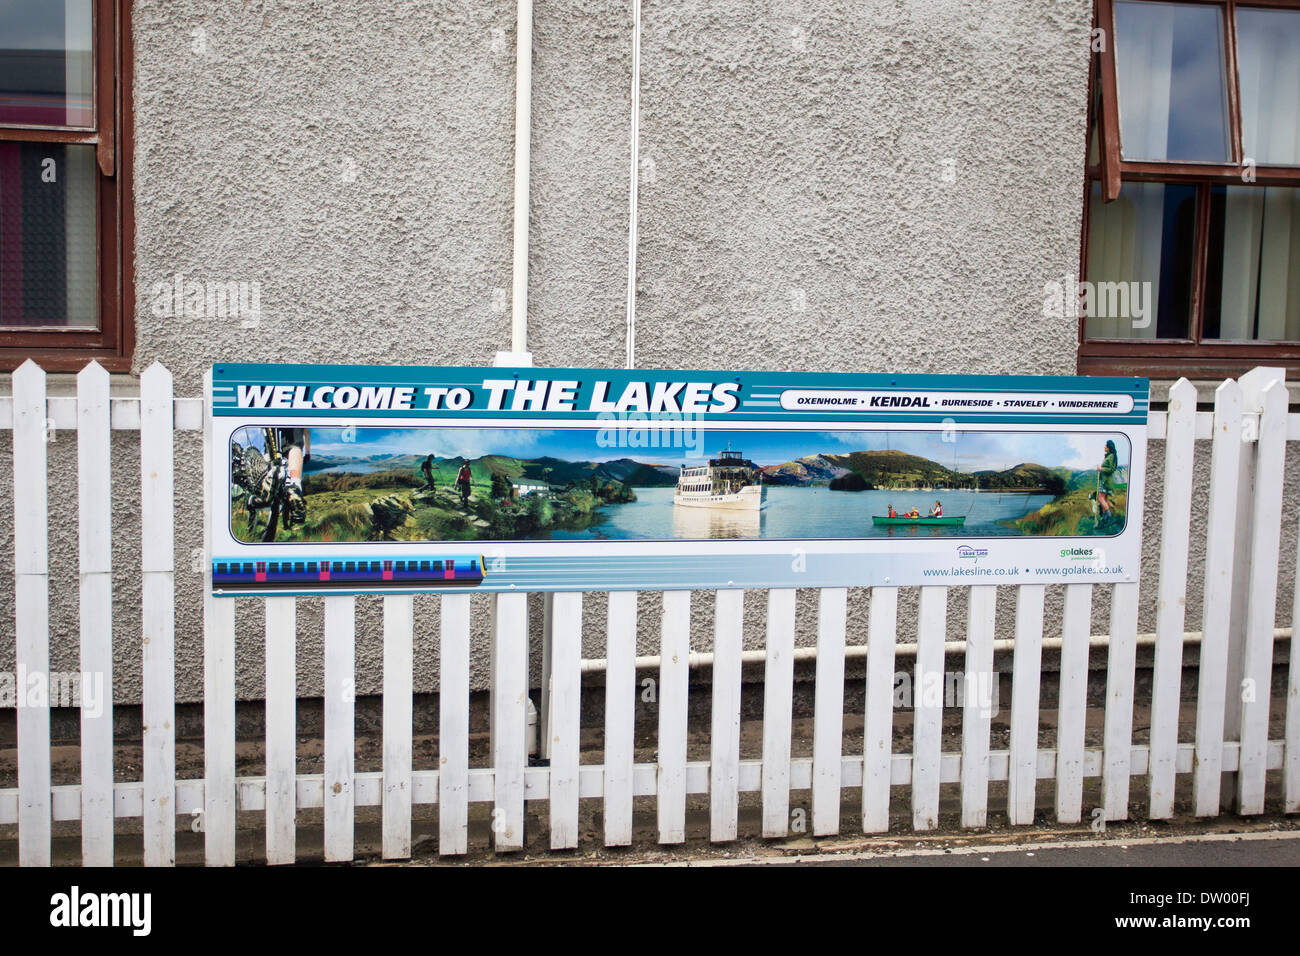 Welcome to the Lakes Kendal railway station sign - Stock Image